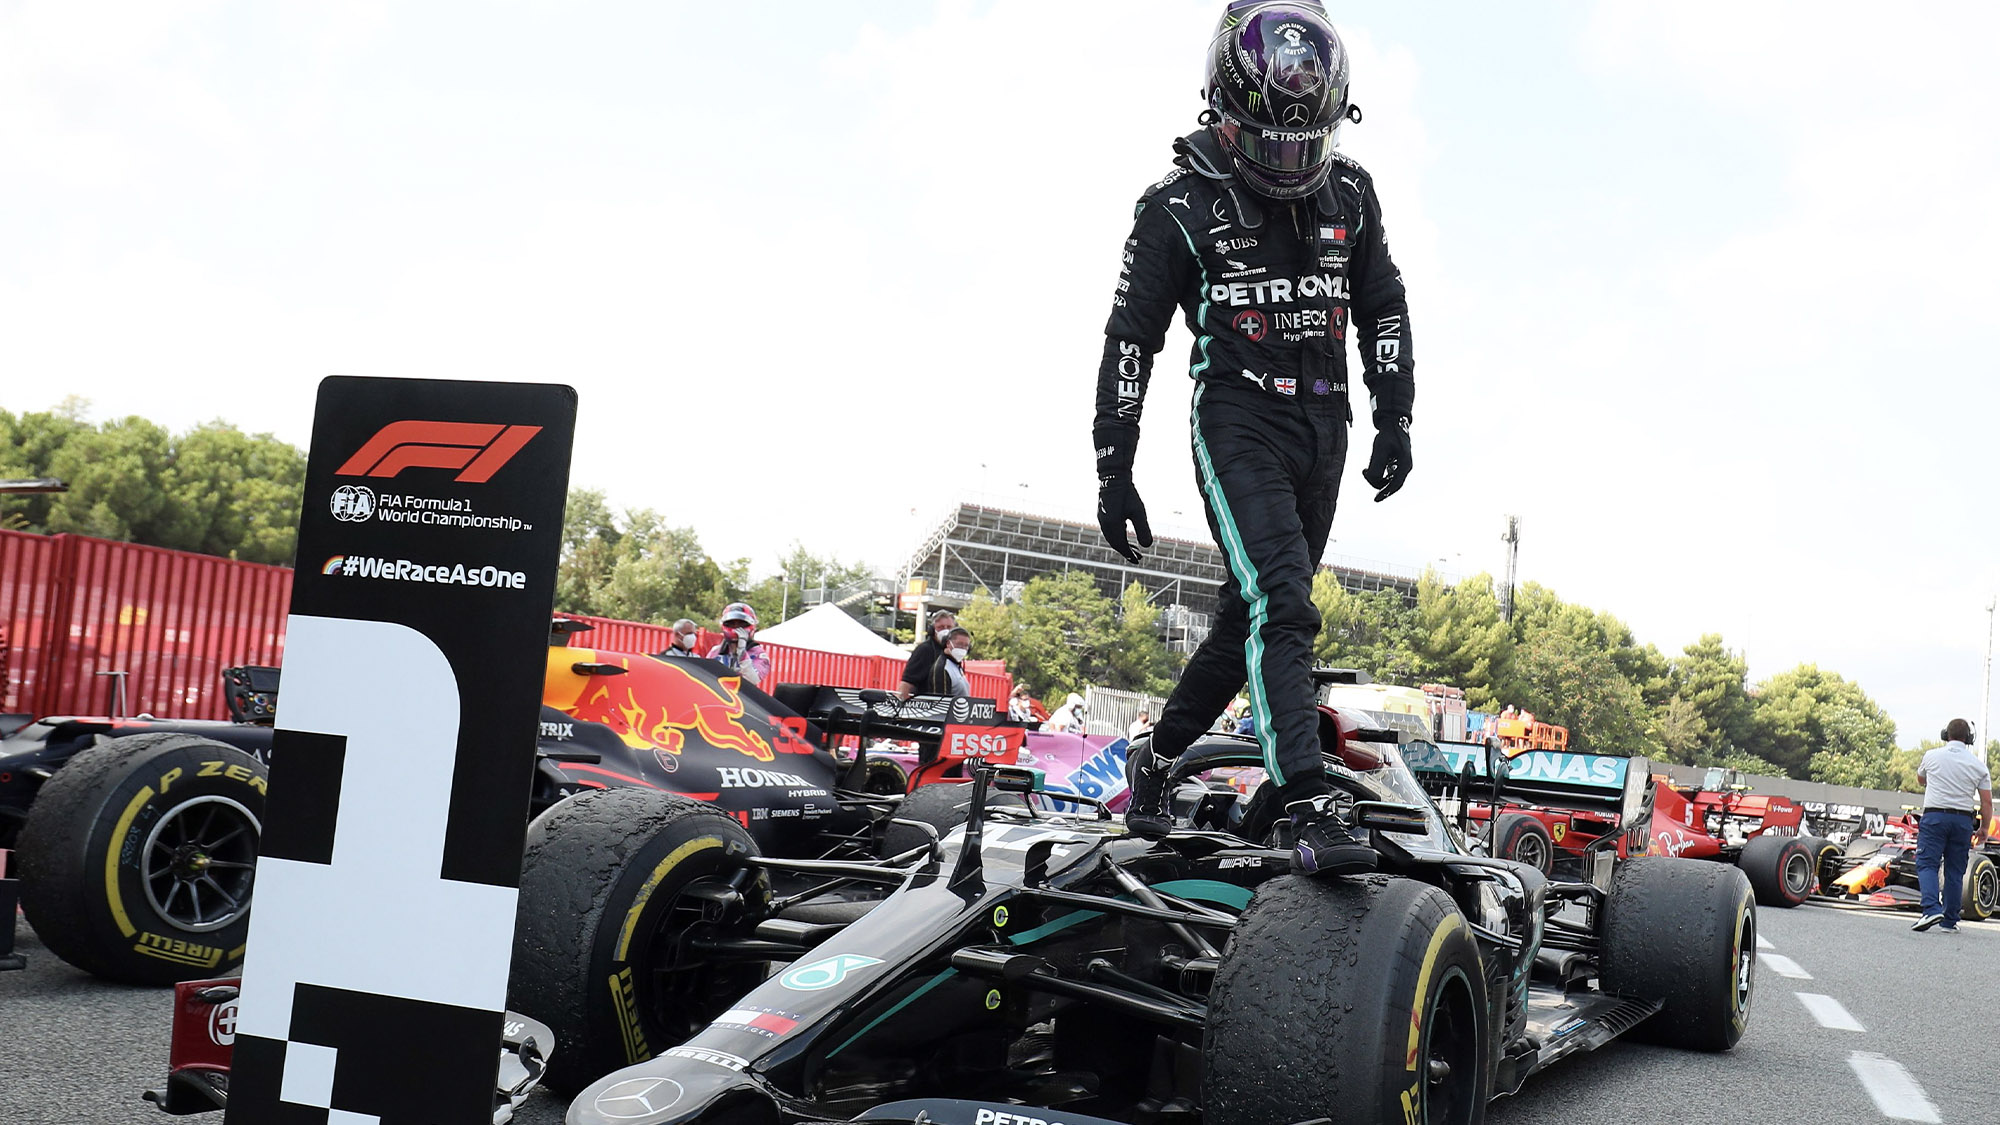 Lewis Hamilton leaps out of his MErcedes W11 after winning the 2020 F1 Spanish Grand Prix